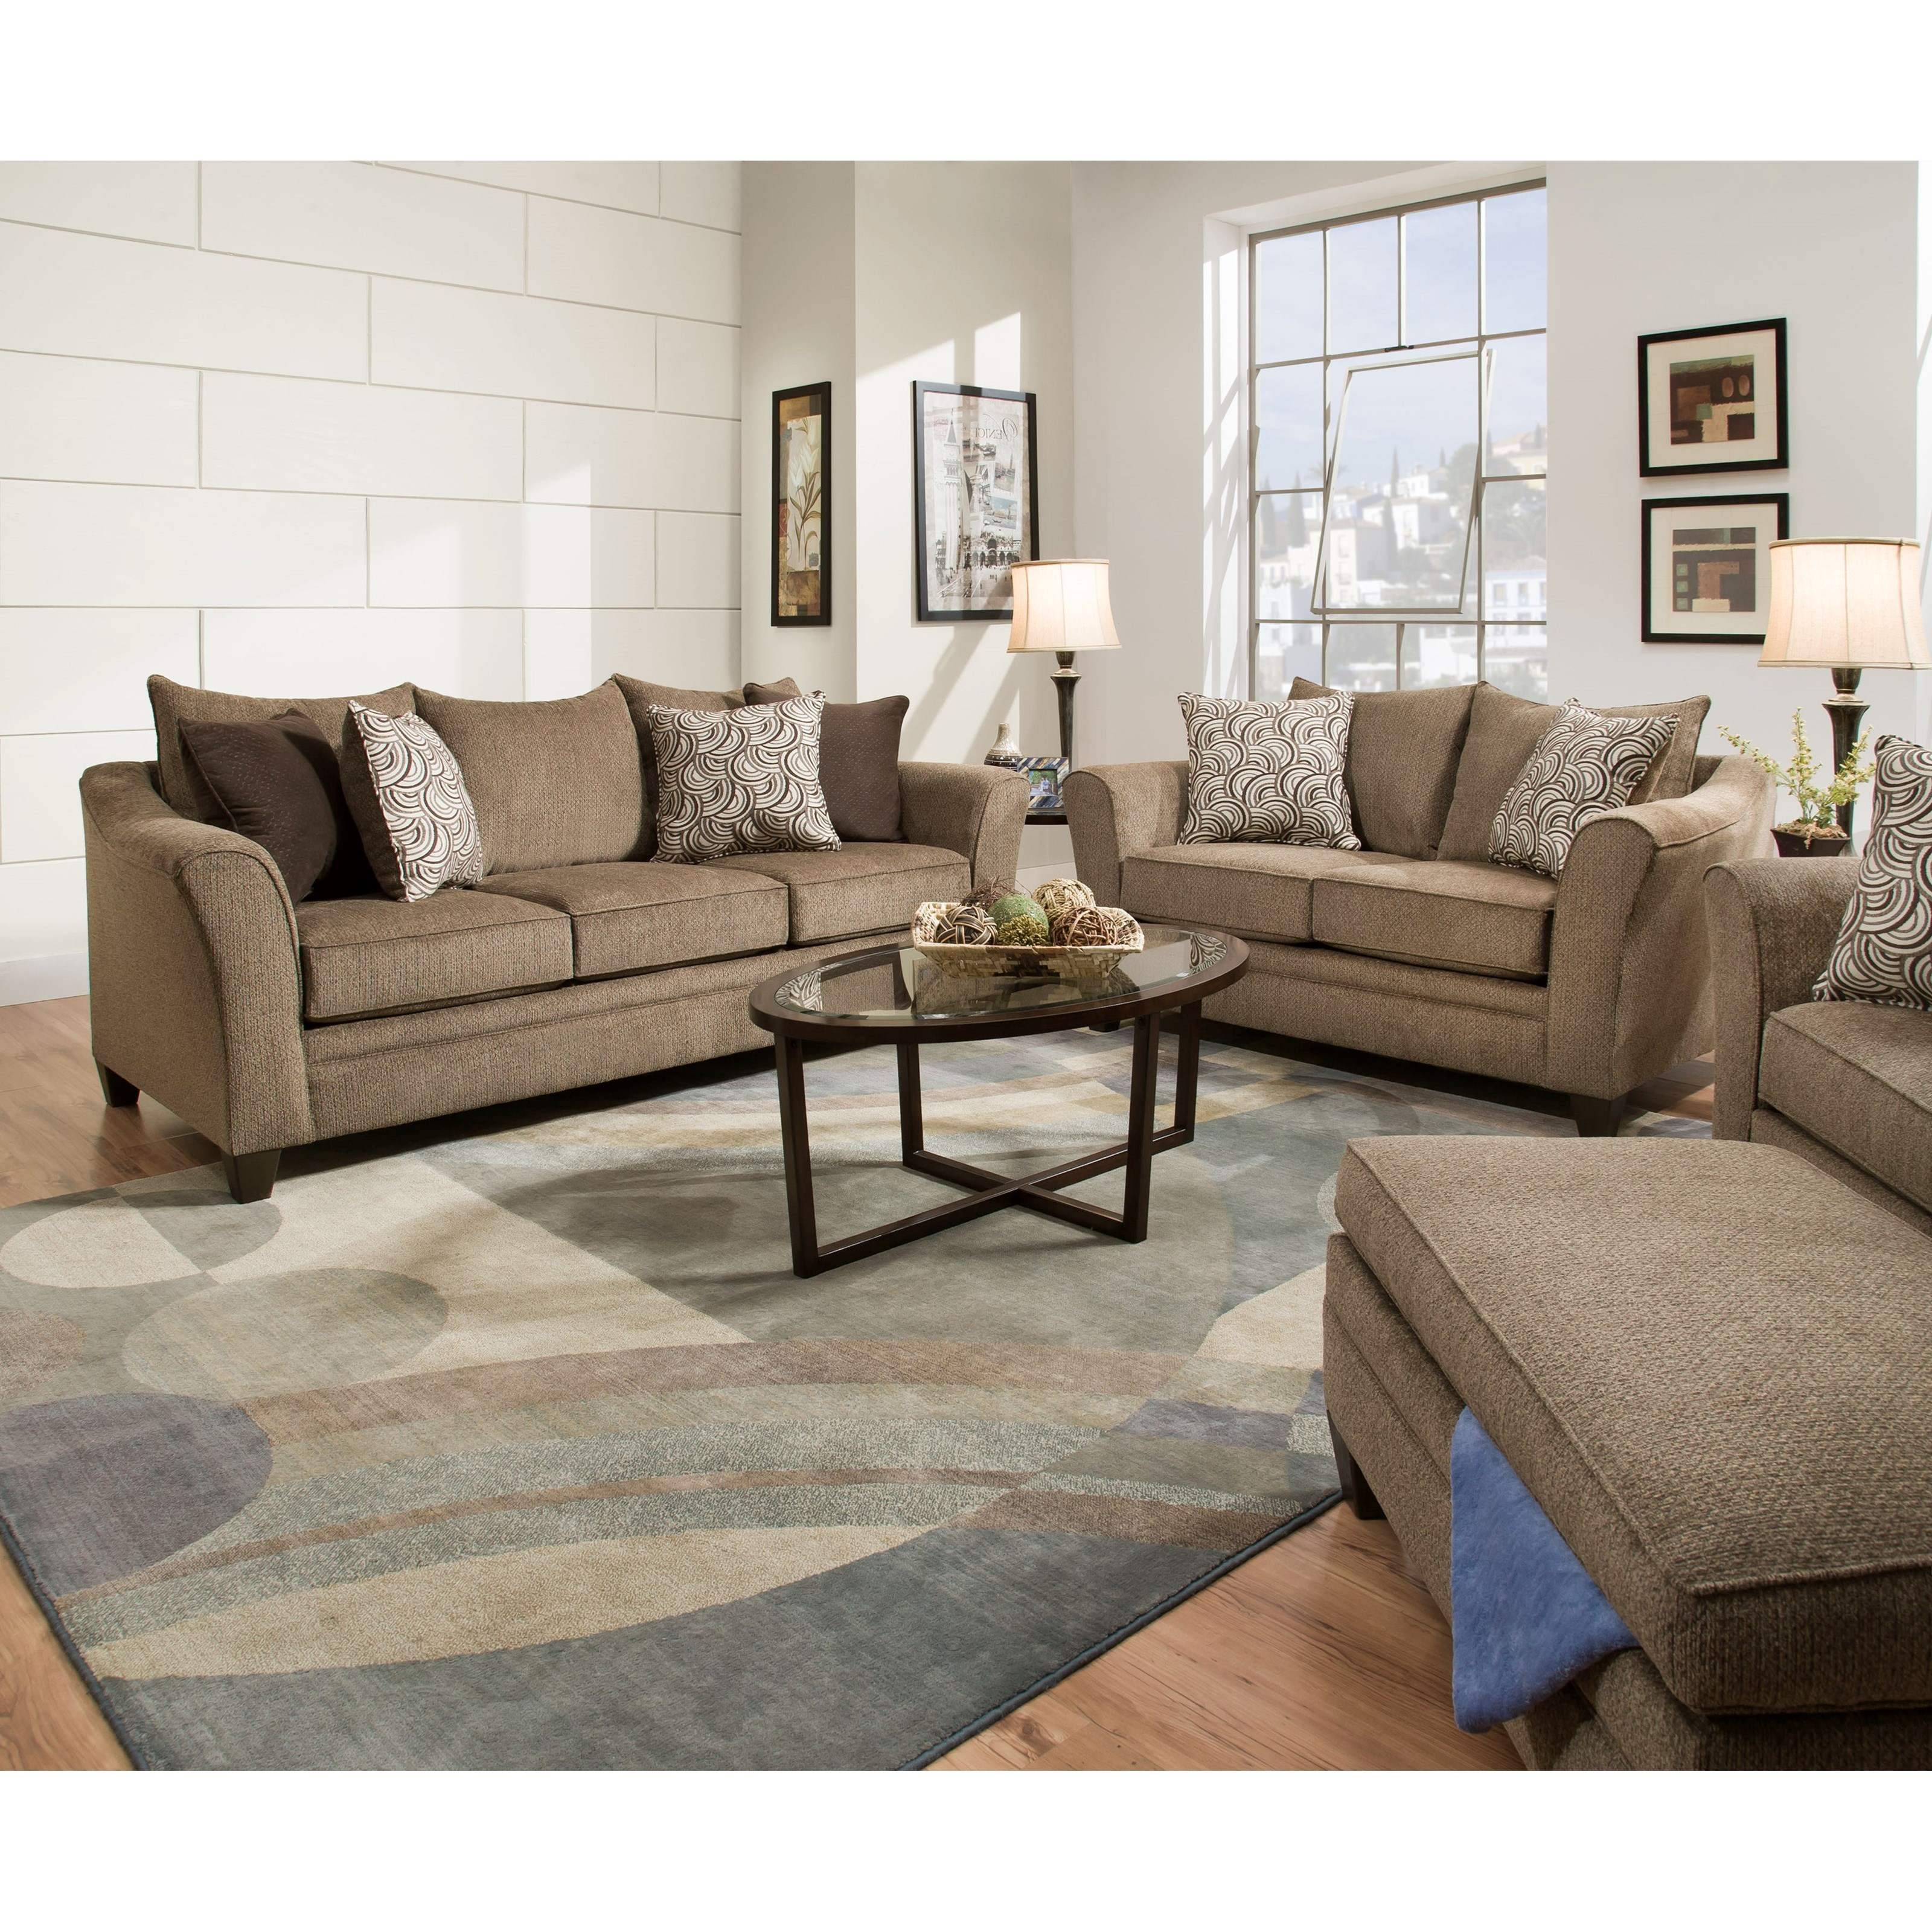 Living room group royal furniture stationary living room groups